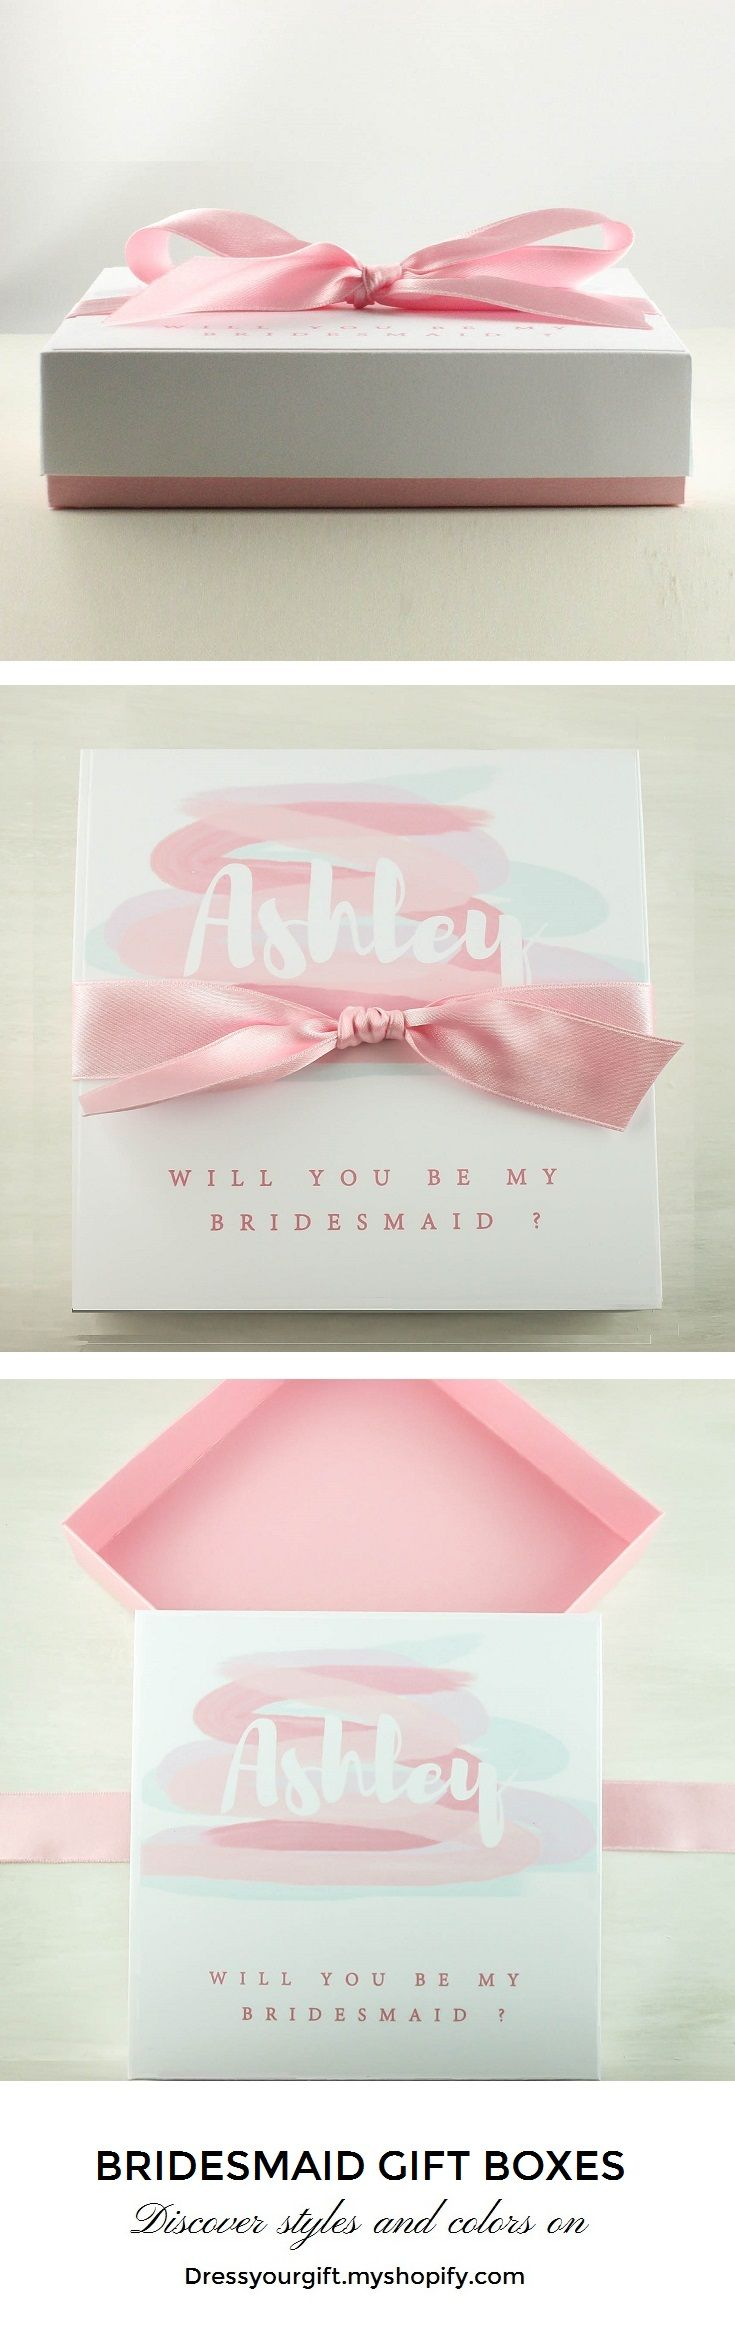 Box with lid and satin ribbon to ask your bridesmaids Will you be my .... #bridalshowergift #bridalshowerpresent #maidofhonorproposal #demoiselledhonneur #damadehonor #trauzeugin #brautjungfern